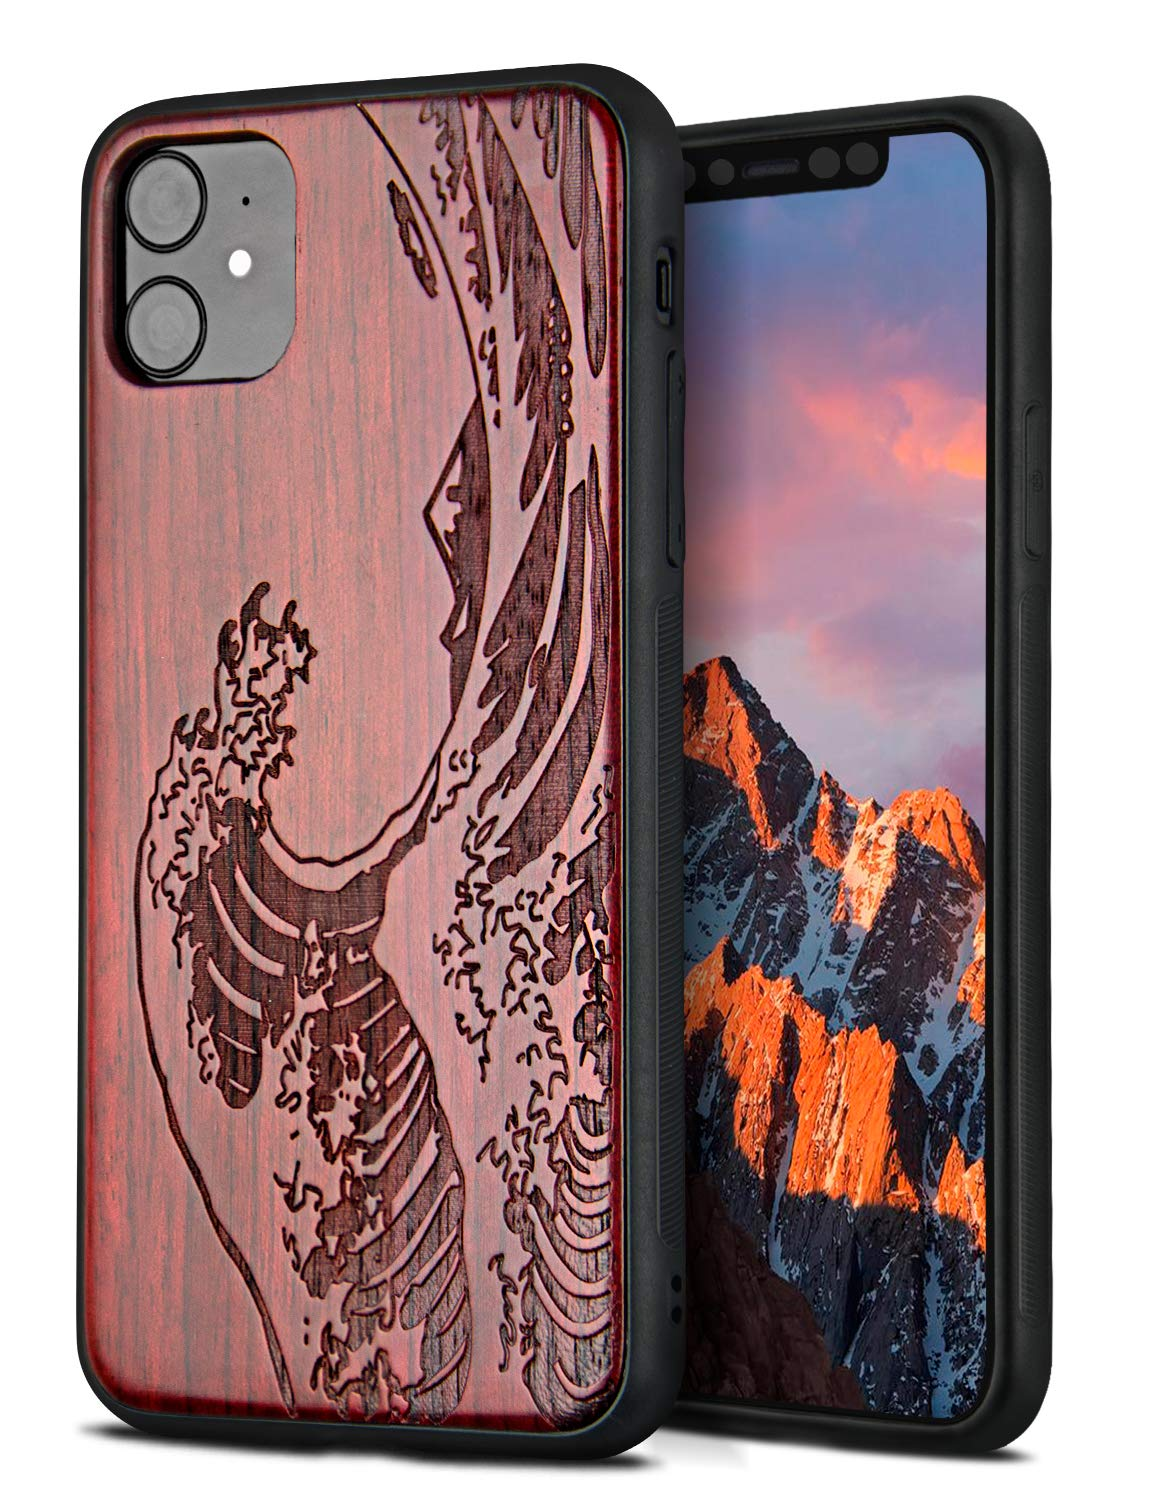 YFWOOD Compatible for iPhone 11 Case 6.1 inch, Unique Wood Shockproof Drop Proof Bumper Protection Cover for iPhone 11 (Wave)